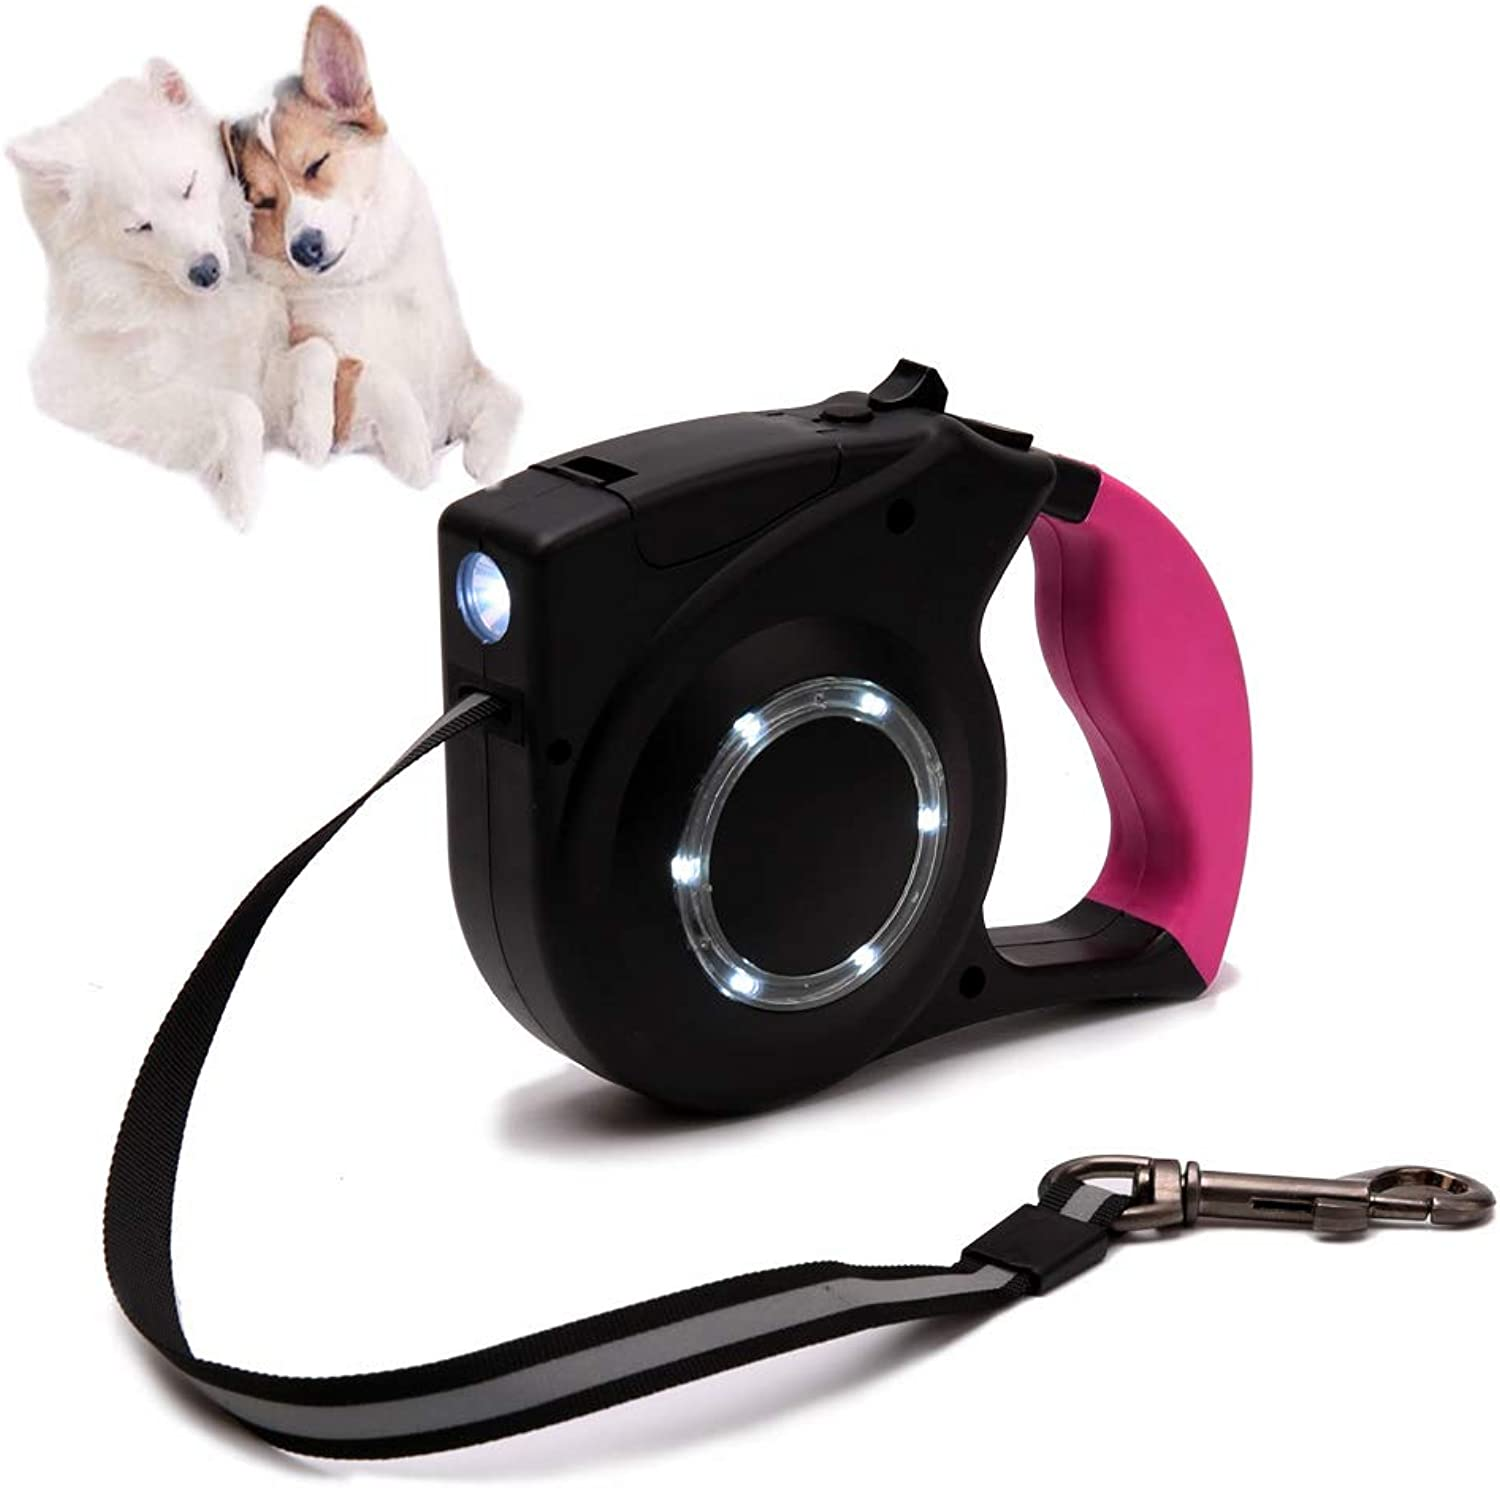 Retractable Dog Leash Set with LED Flashlight  4 Meters Long Tape Leash  for Dogs and Puppies Walking, Tangle Free (Pink)